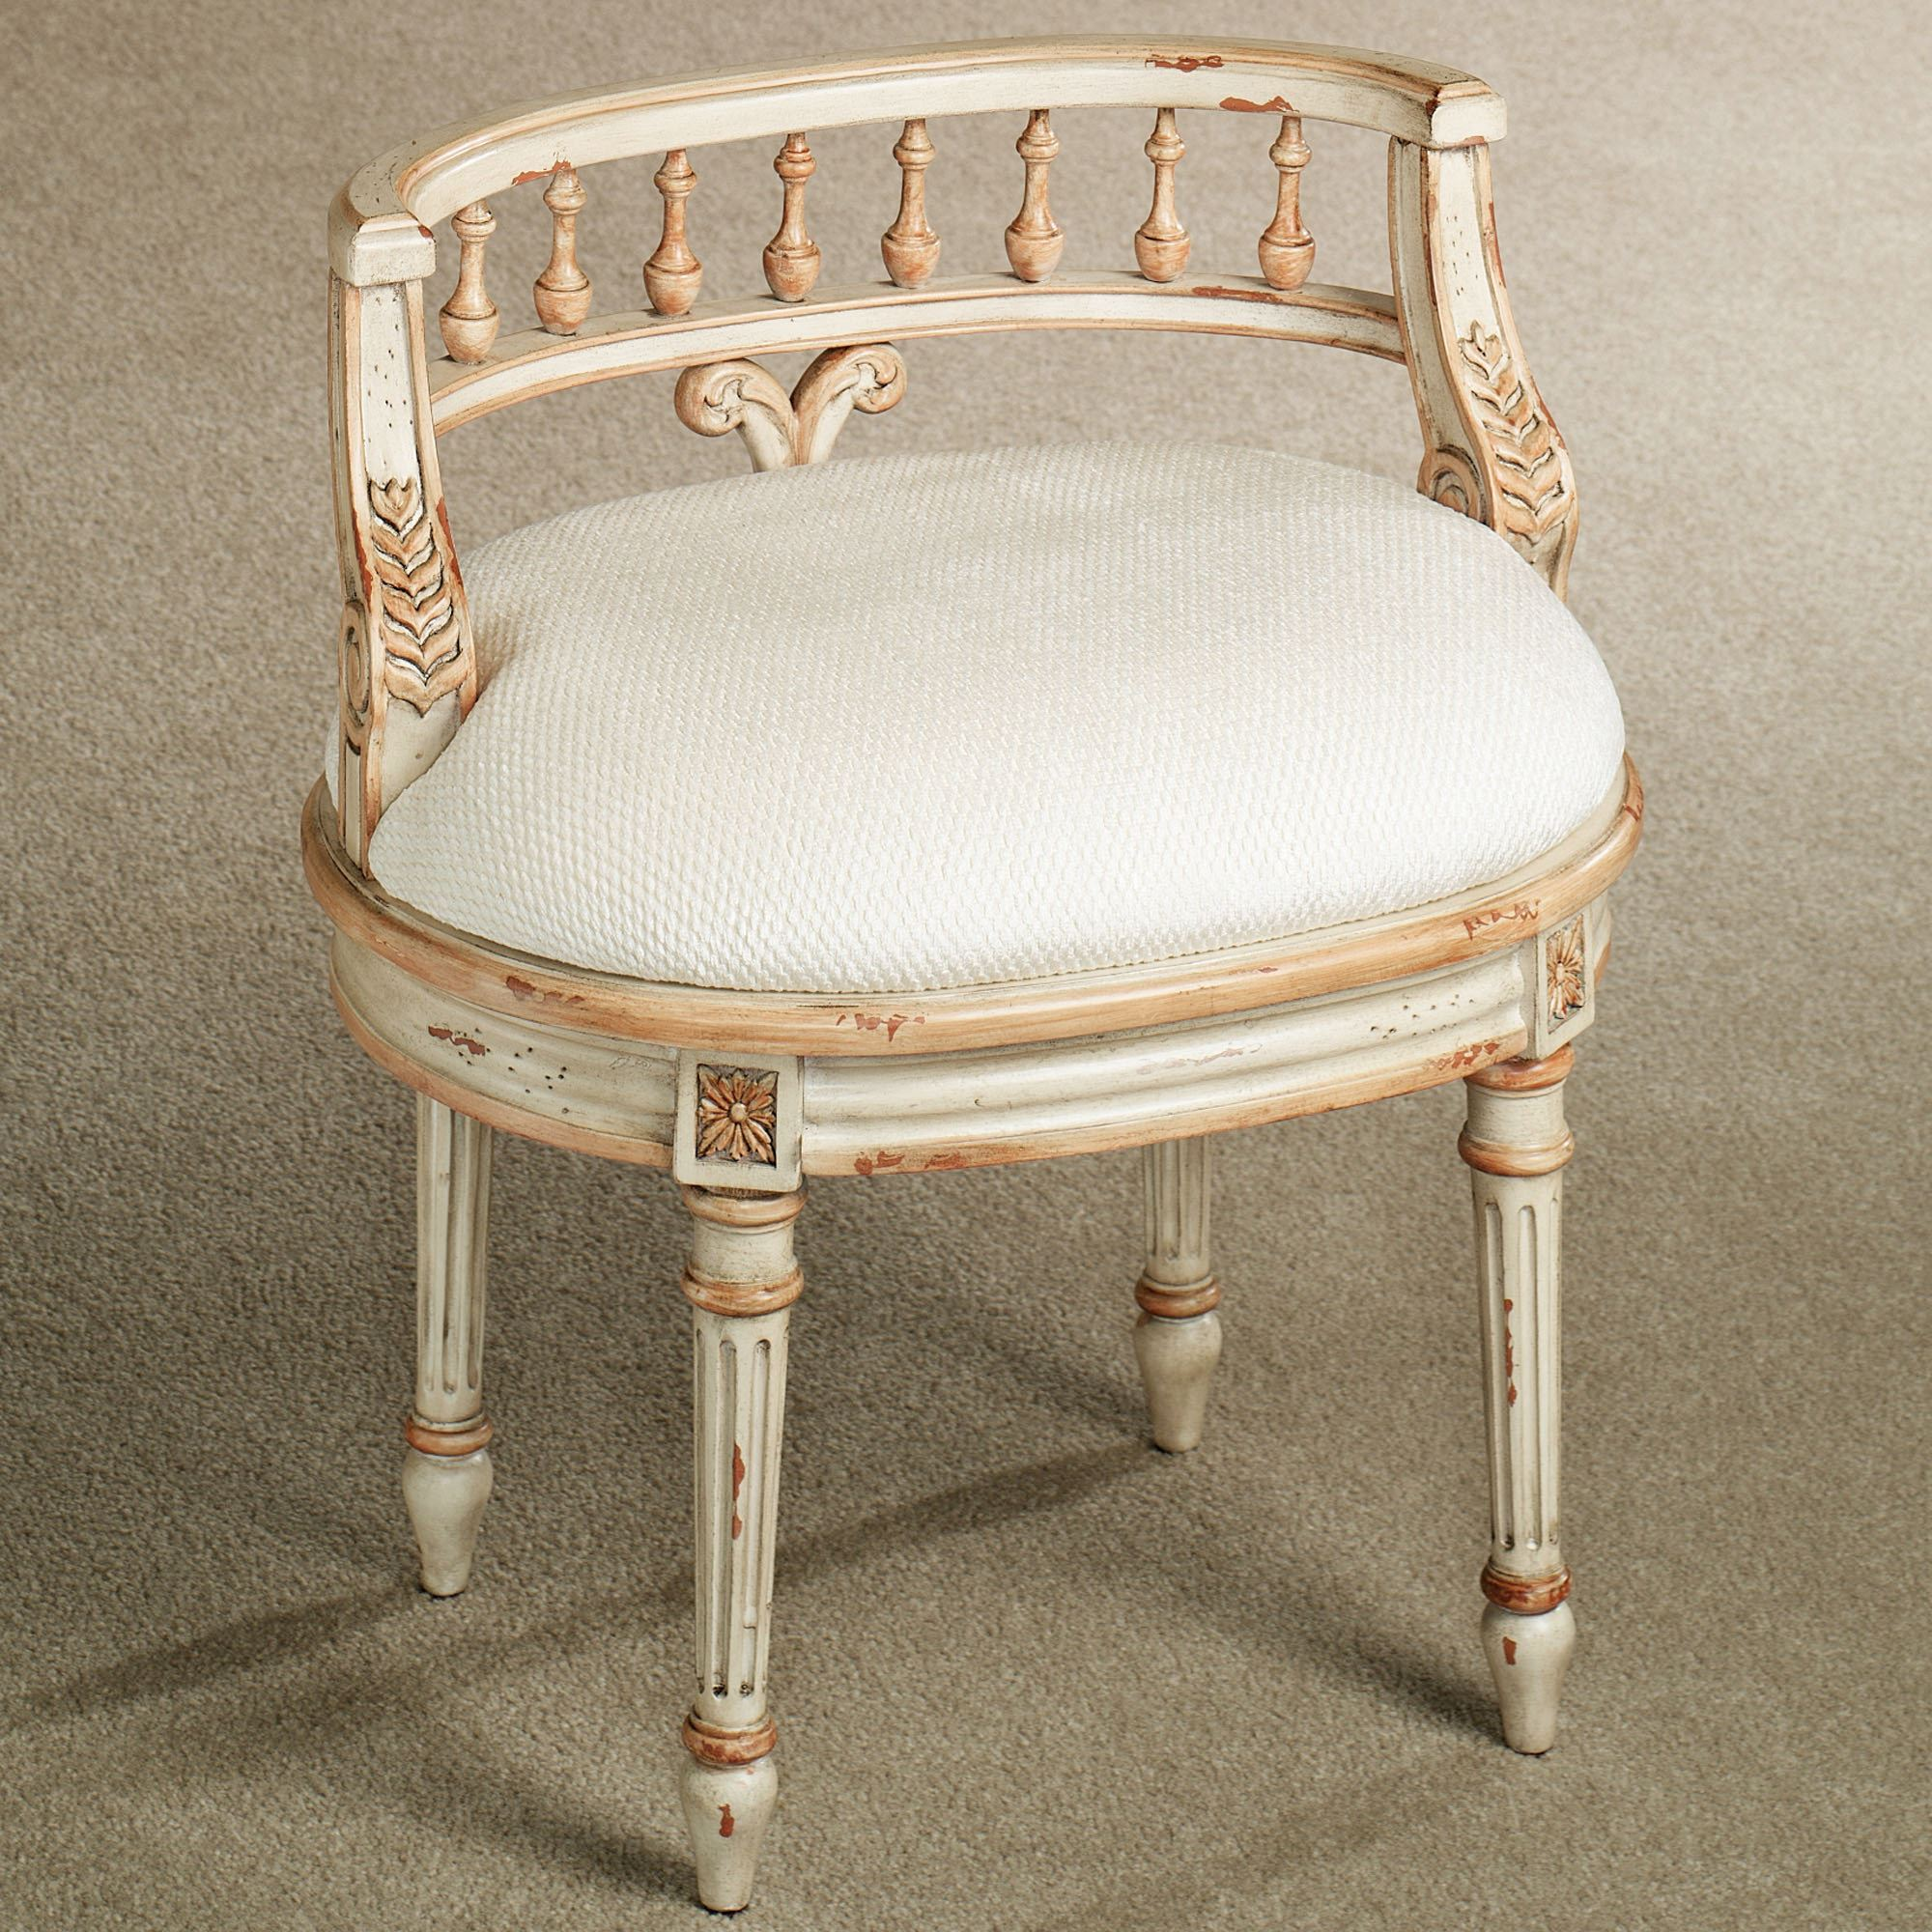 queensley vanity chair antique ivory. click to expand YXDLSLZ